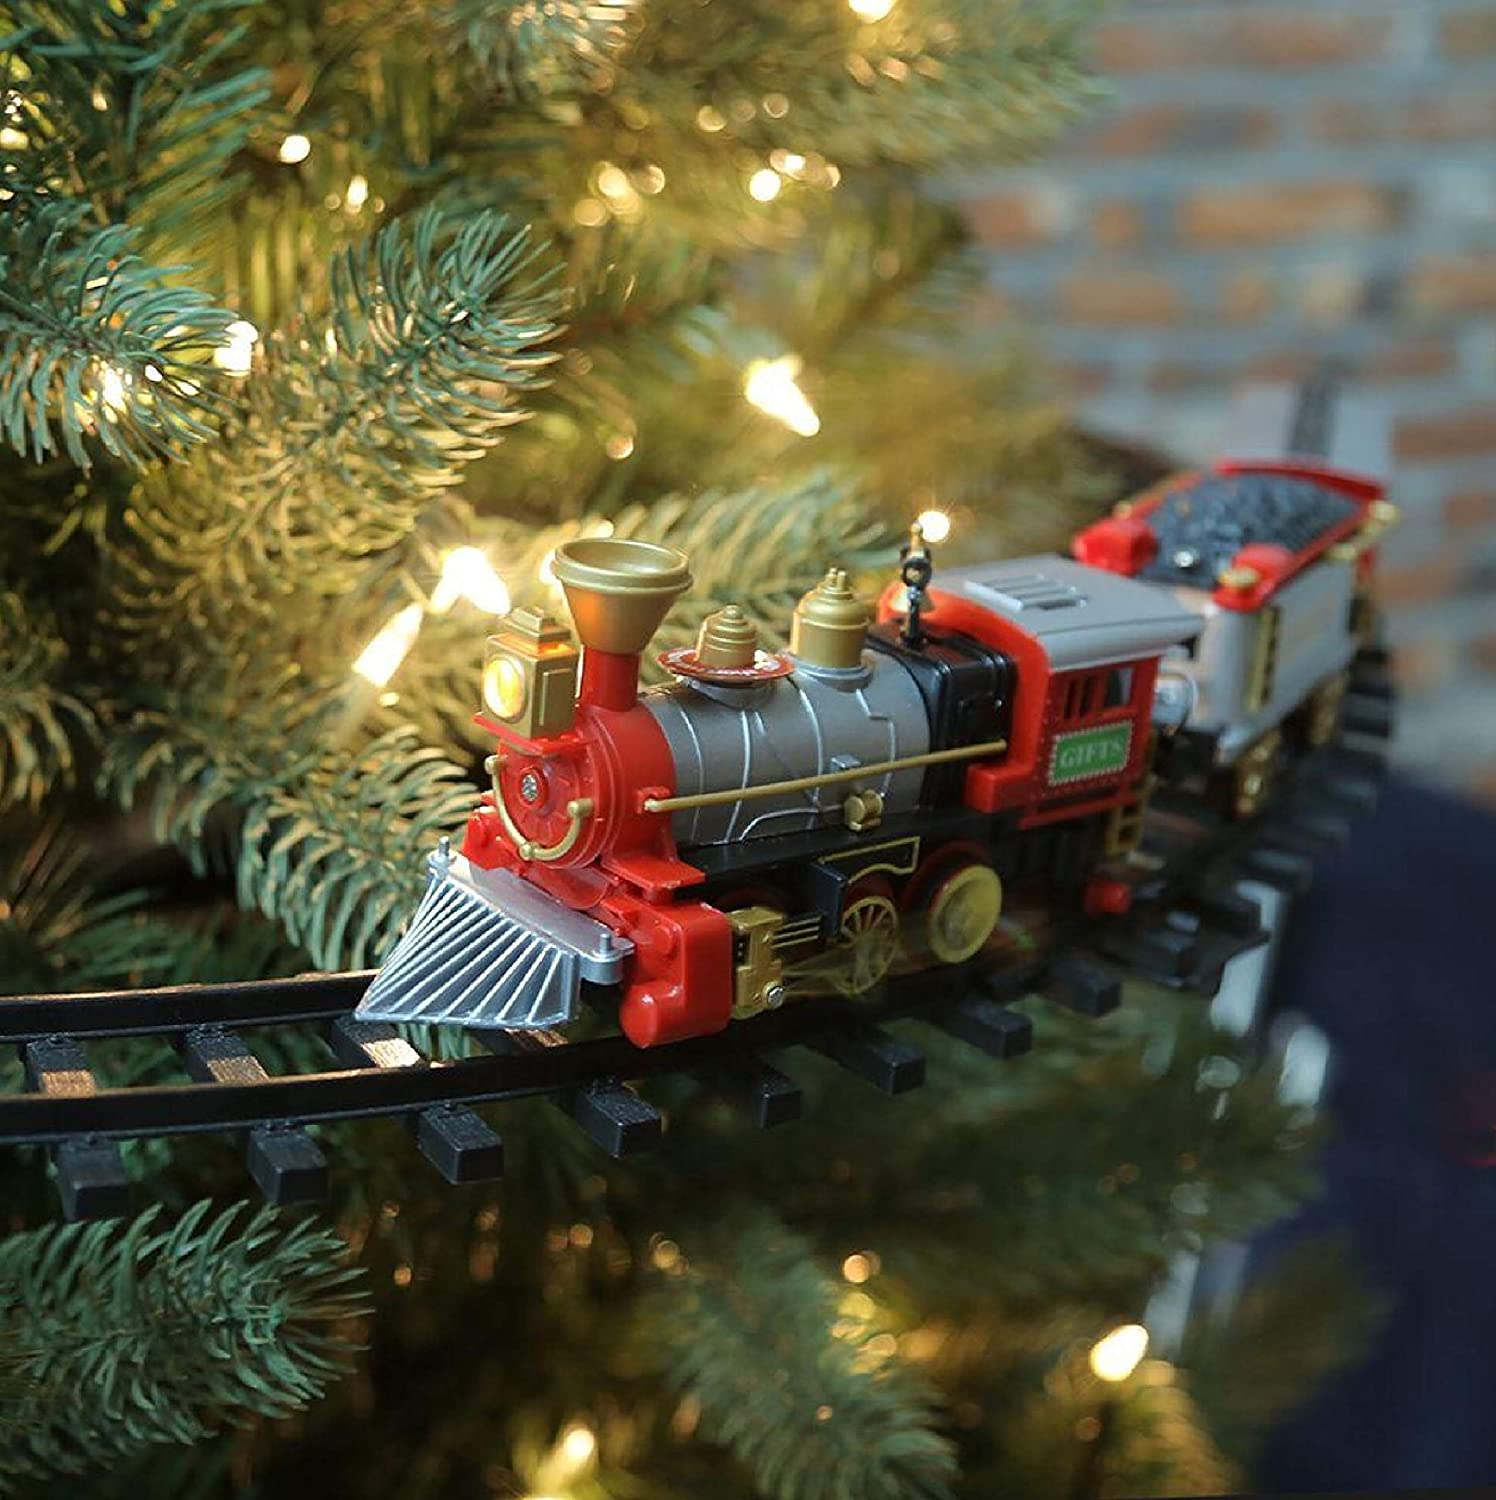 Home Accents Holiday Christmas Around The Tree Train Set - 9 Ft Mounts to Tree Trunk or Run on Floor - 35 Inch Track Diameter